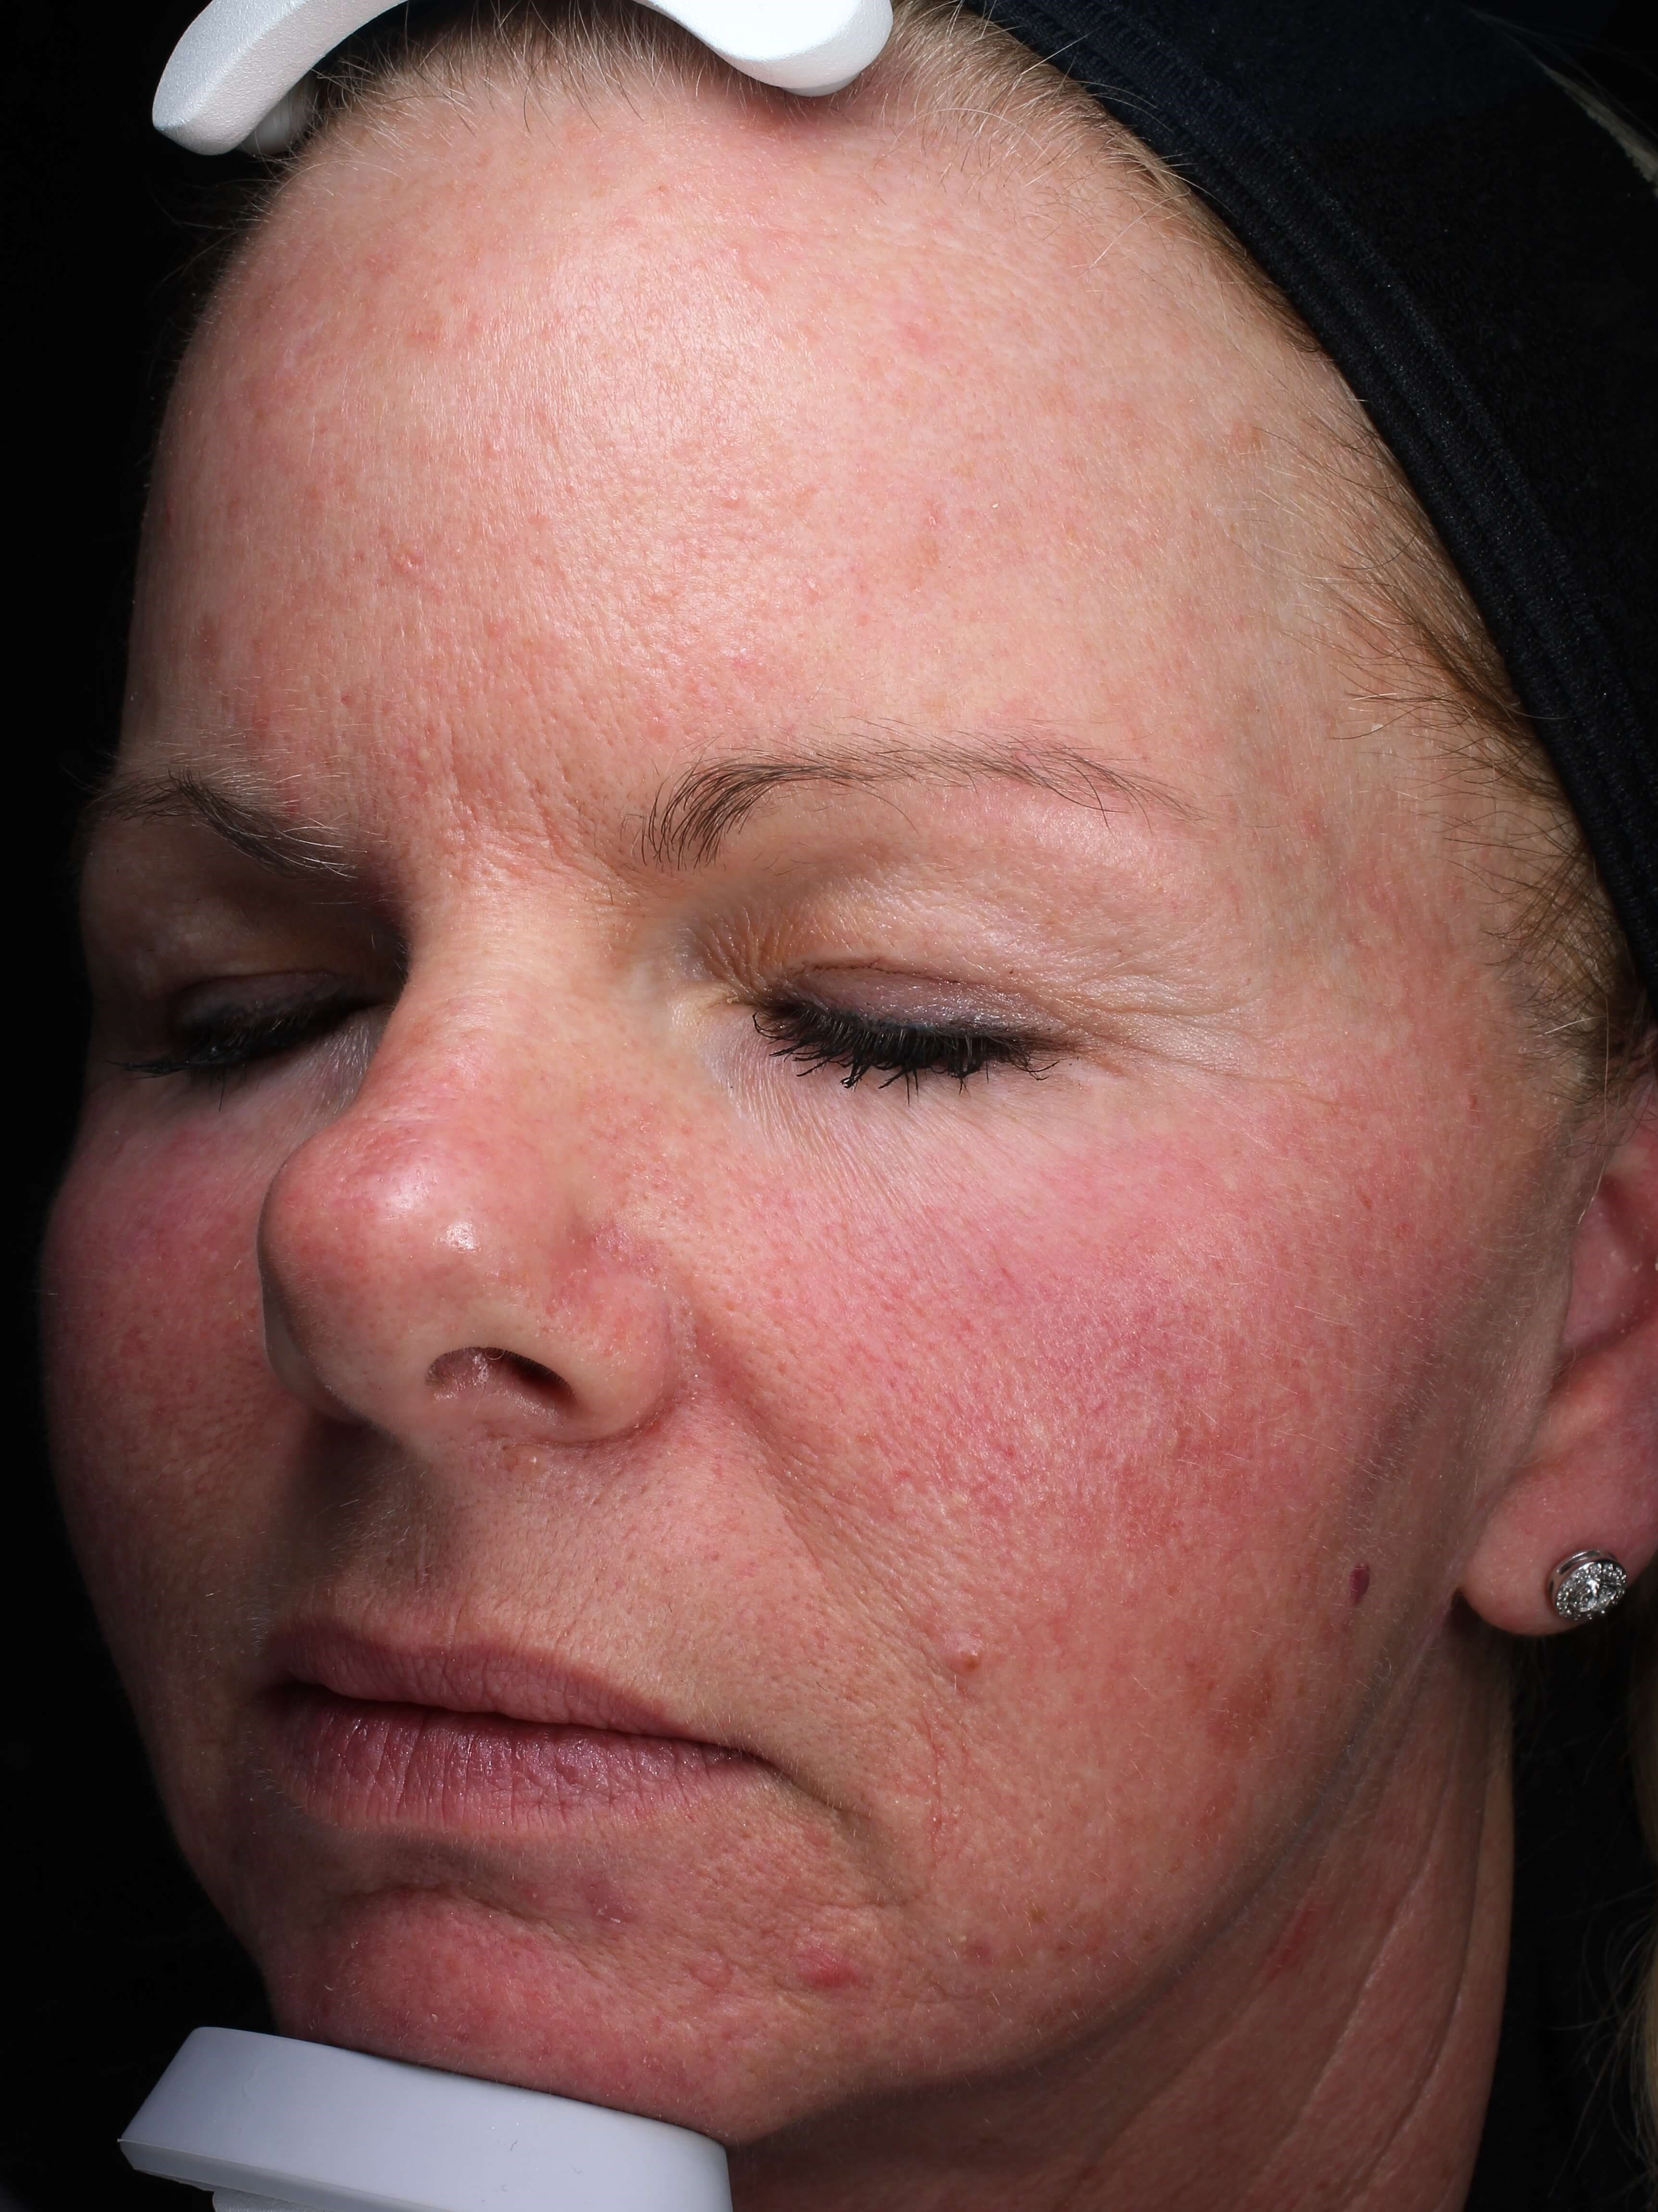 IPL Skin Rejuvenation Before